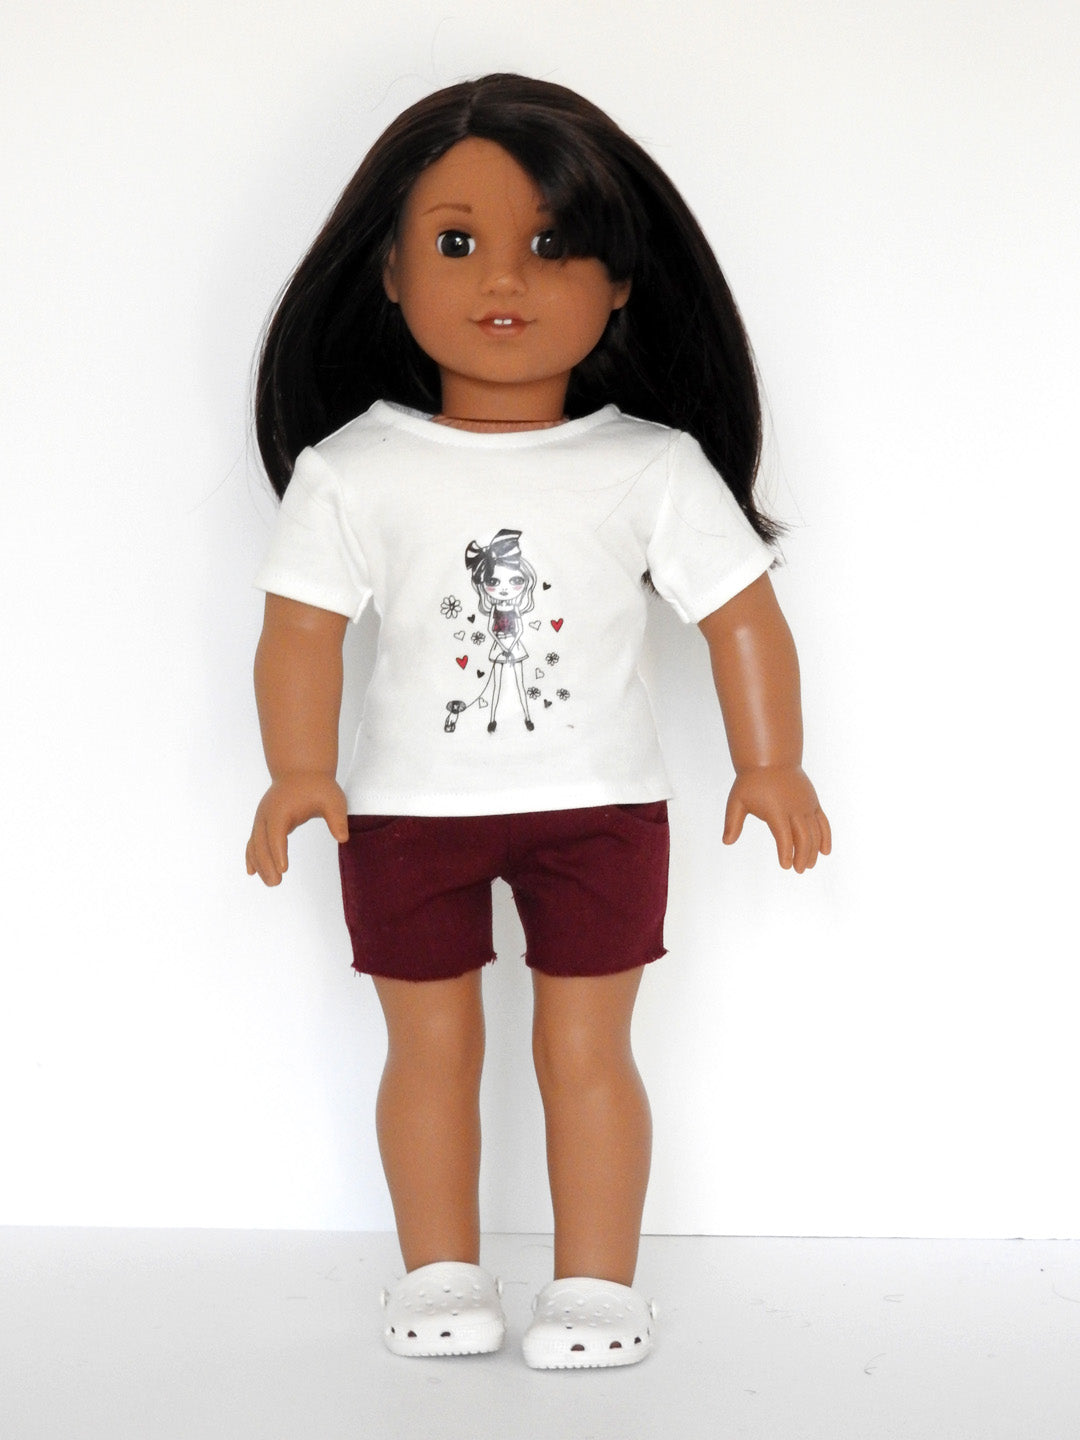 American Girl doll graphic t-shirt and Cut-off shorts